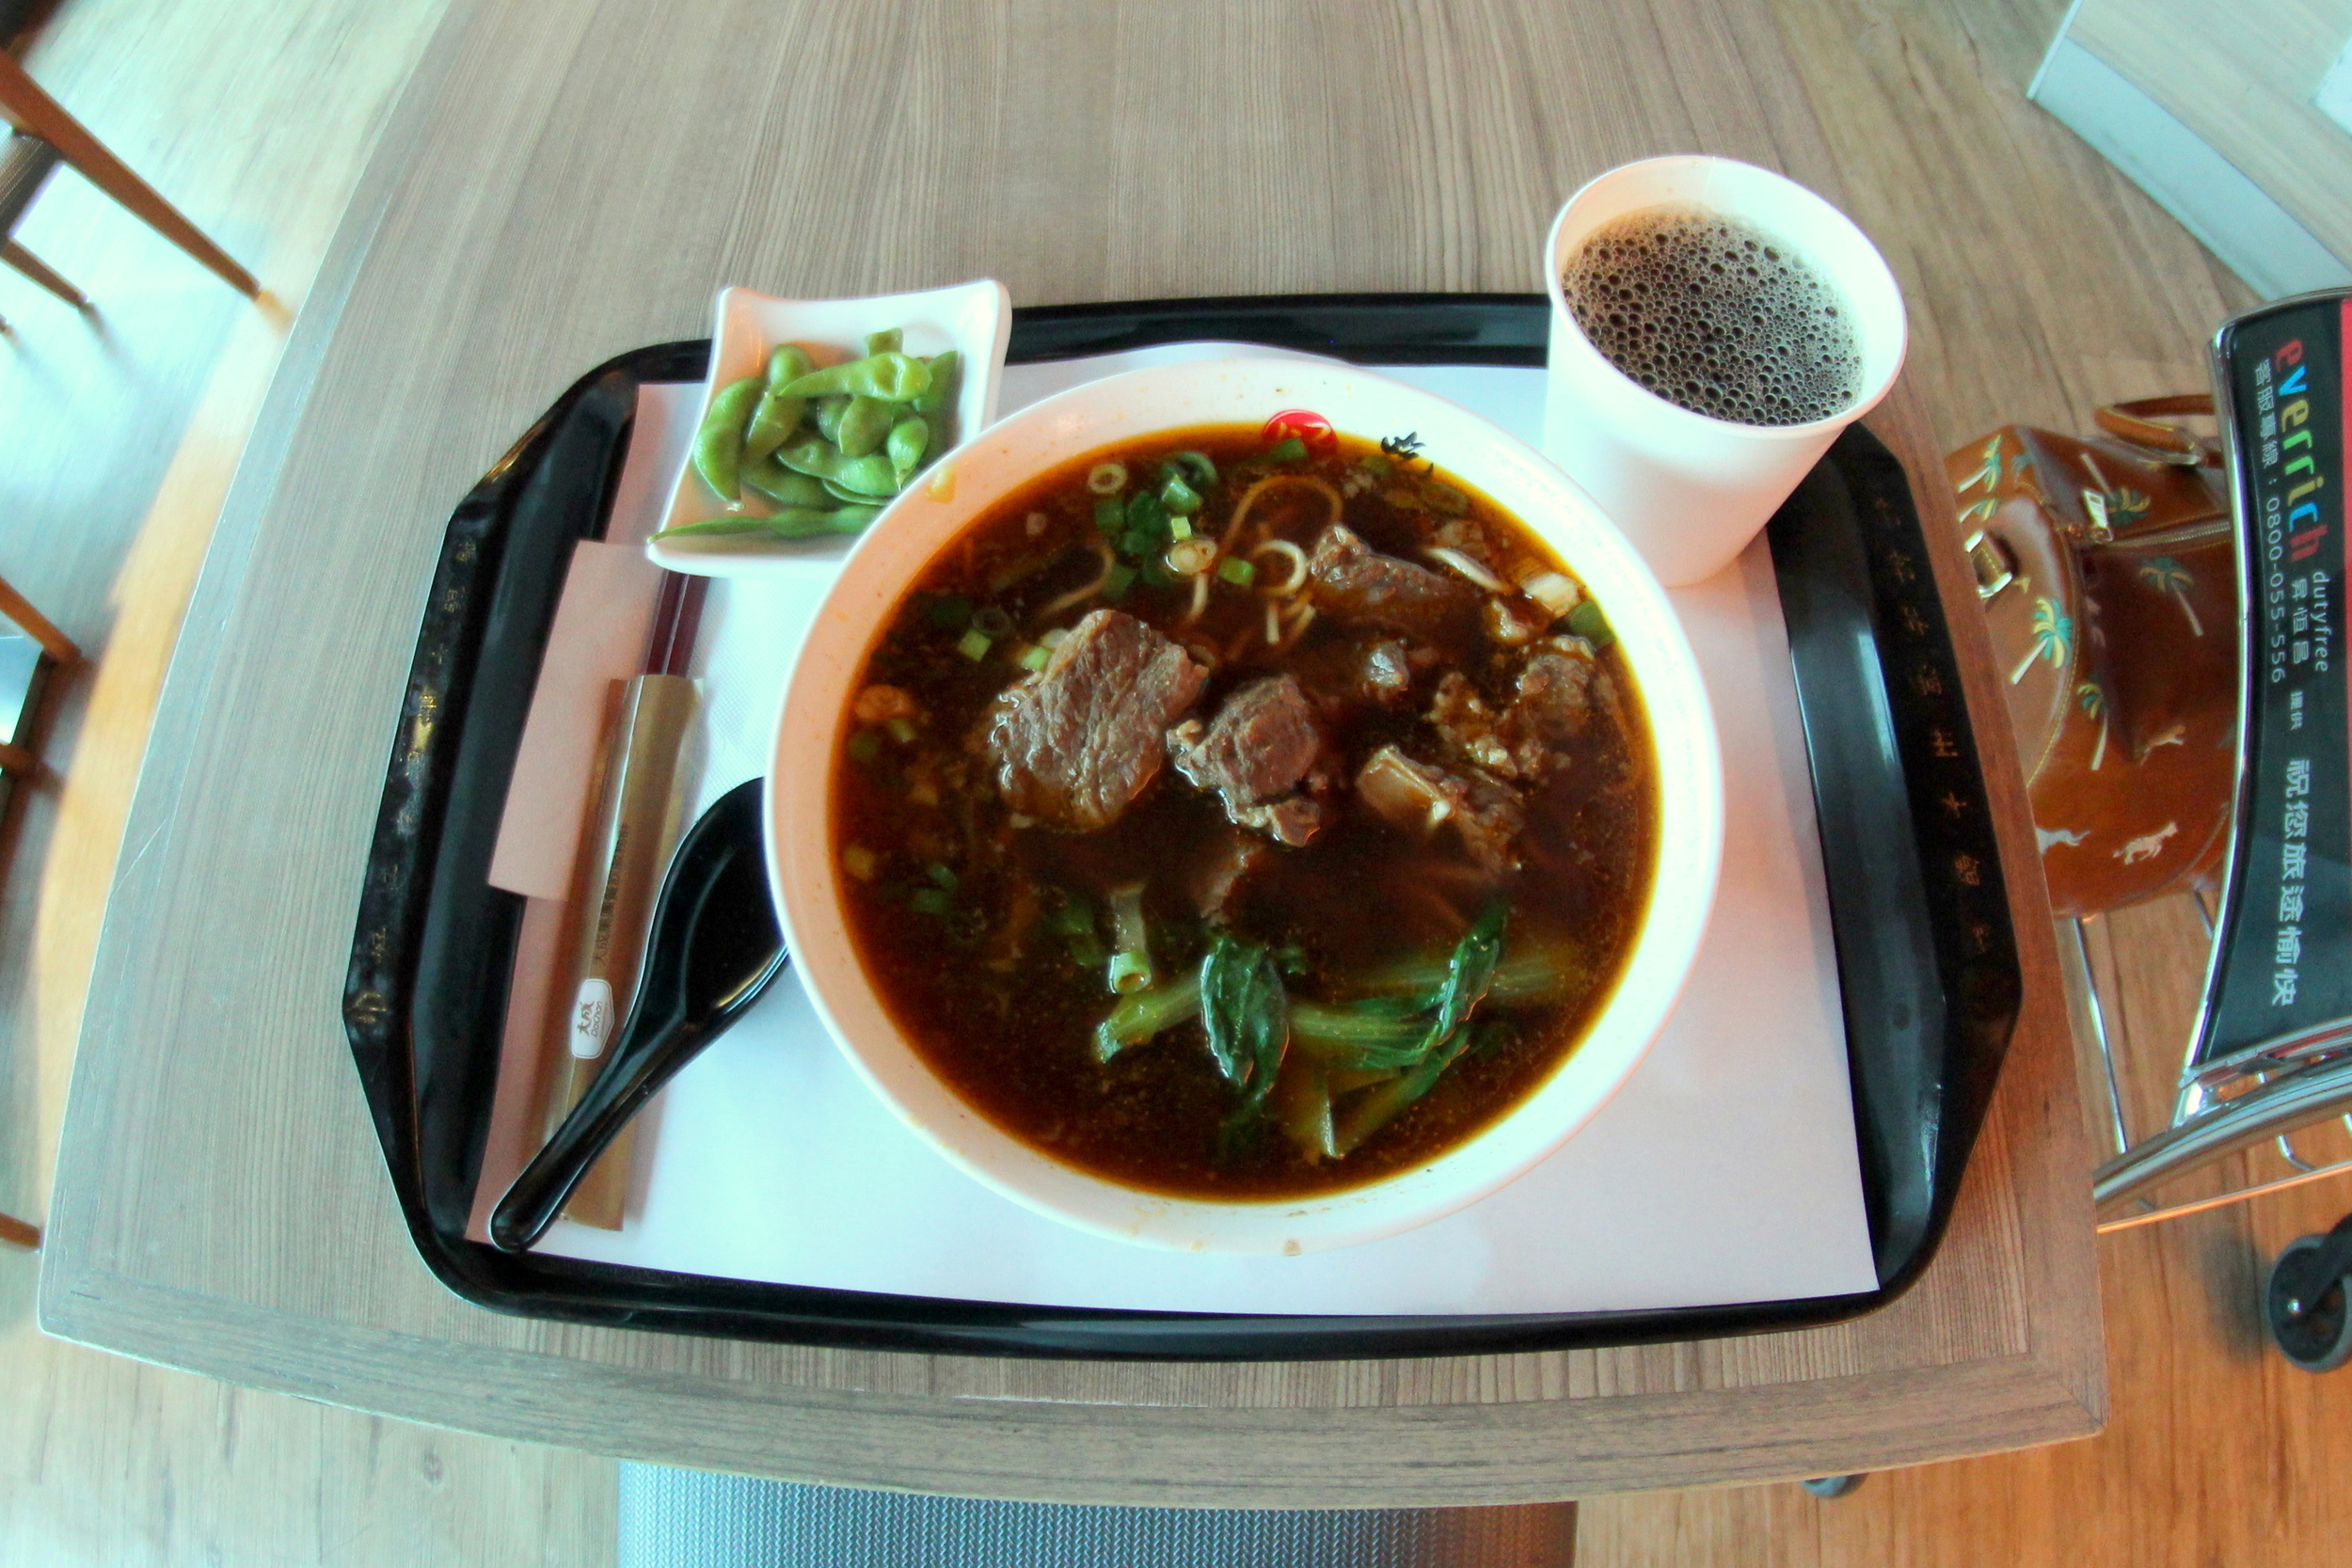 Beef Noodle Soup (Yue Hsiang Ting)